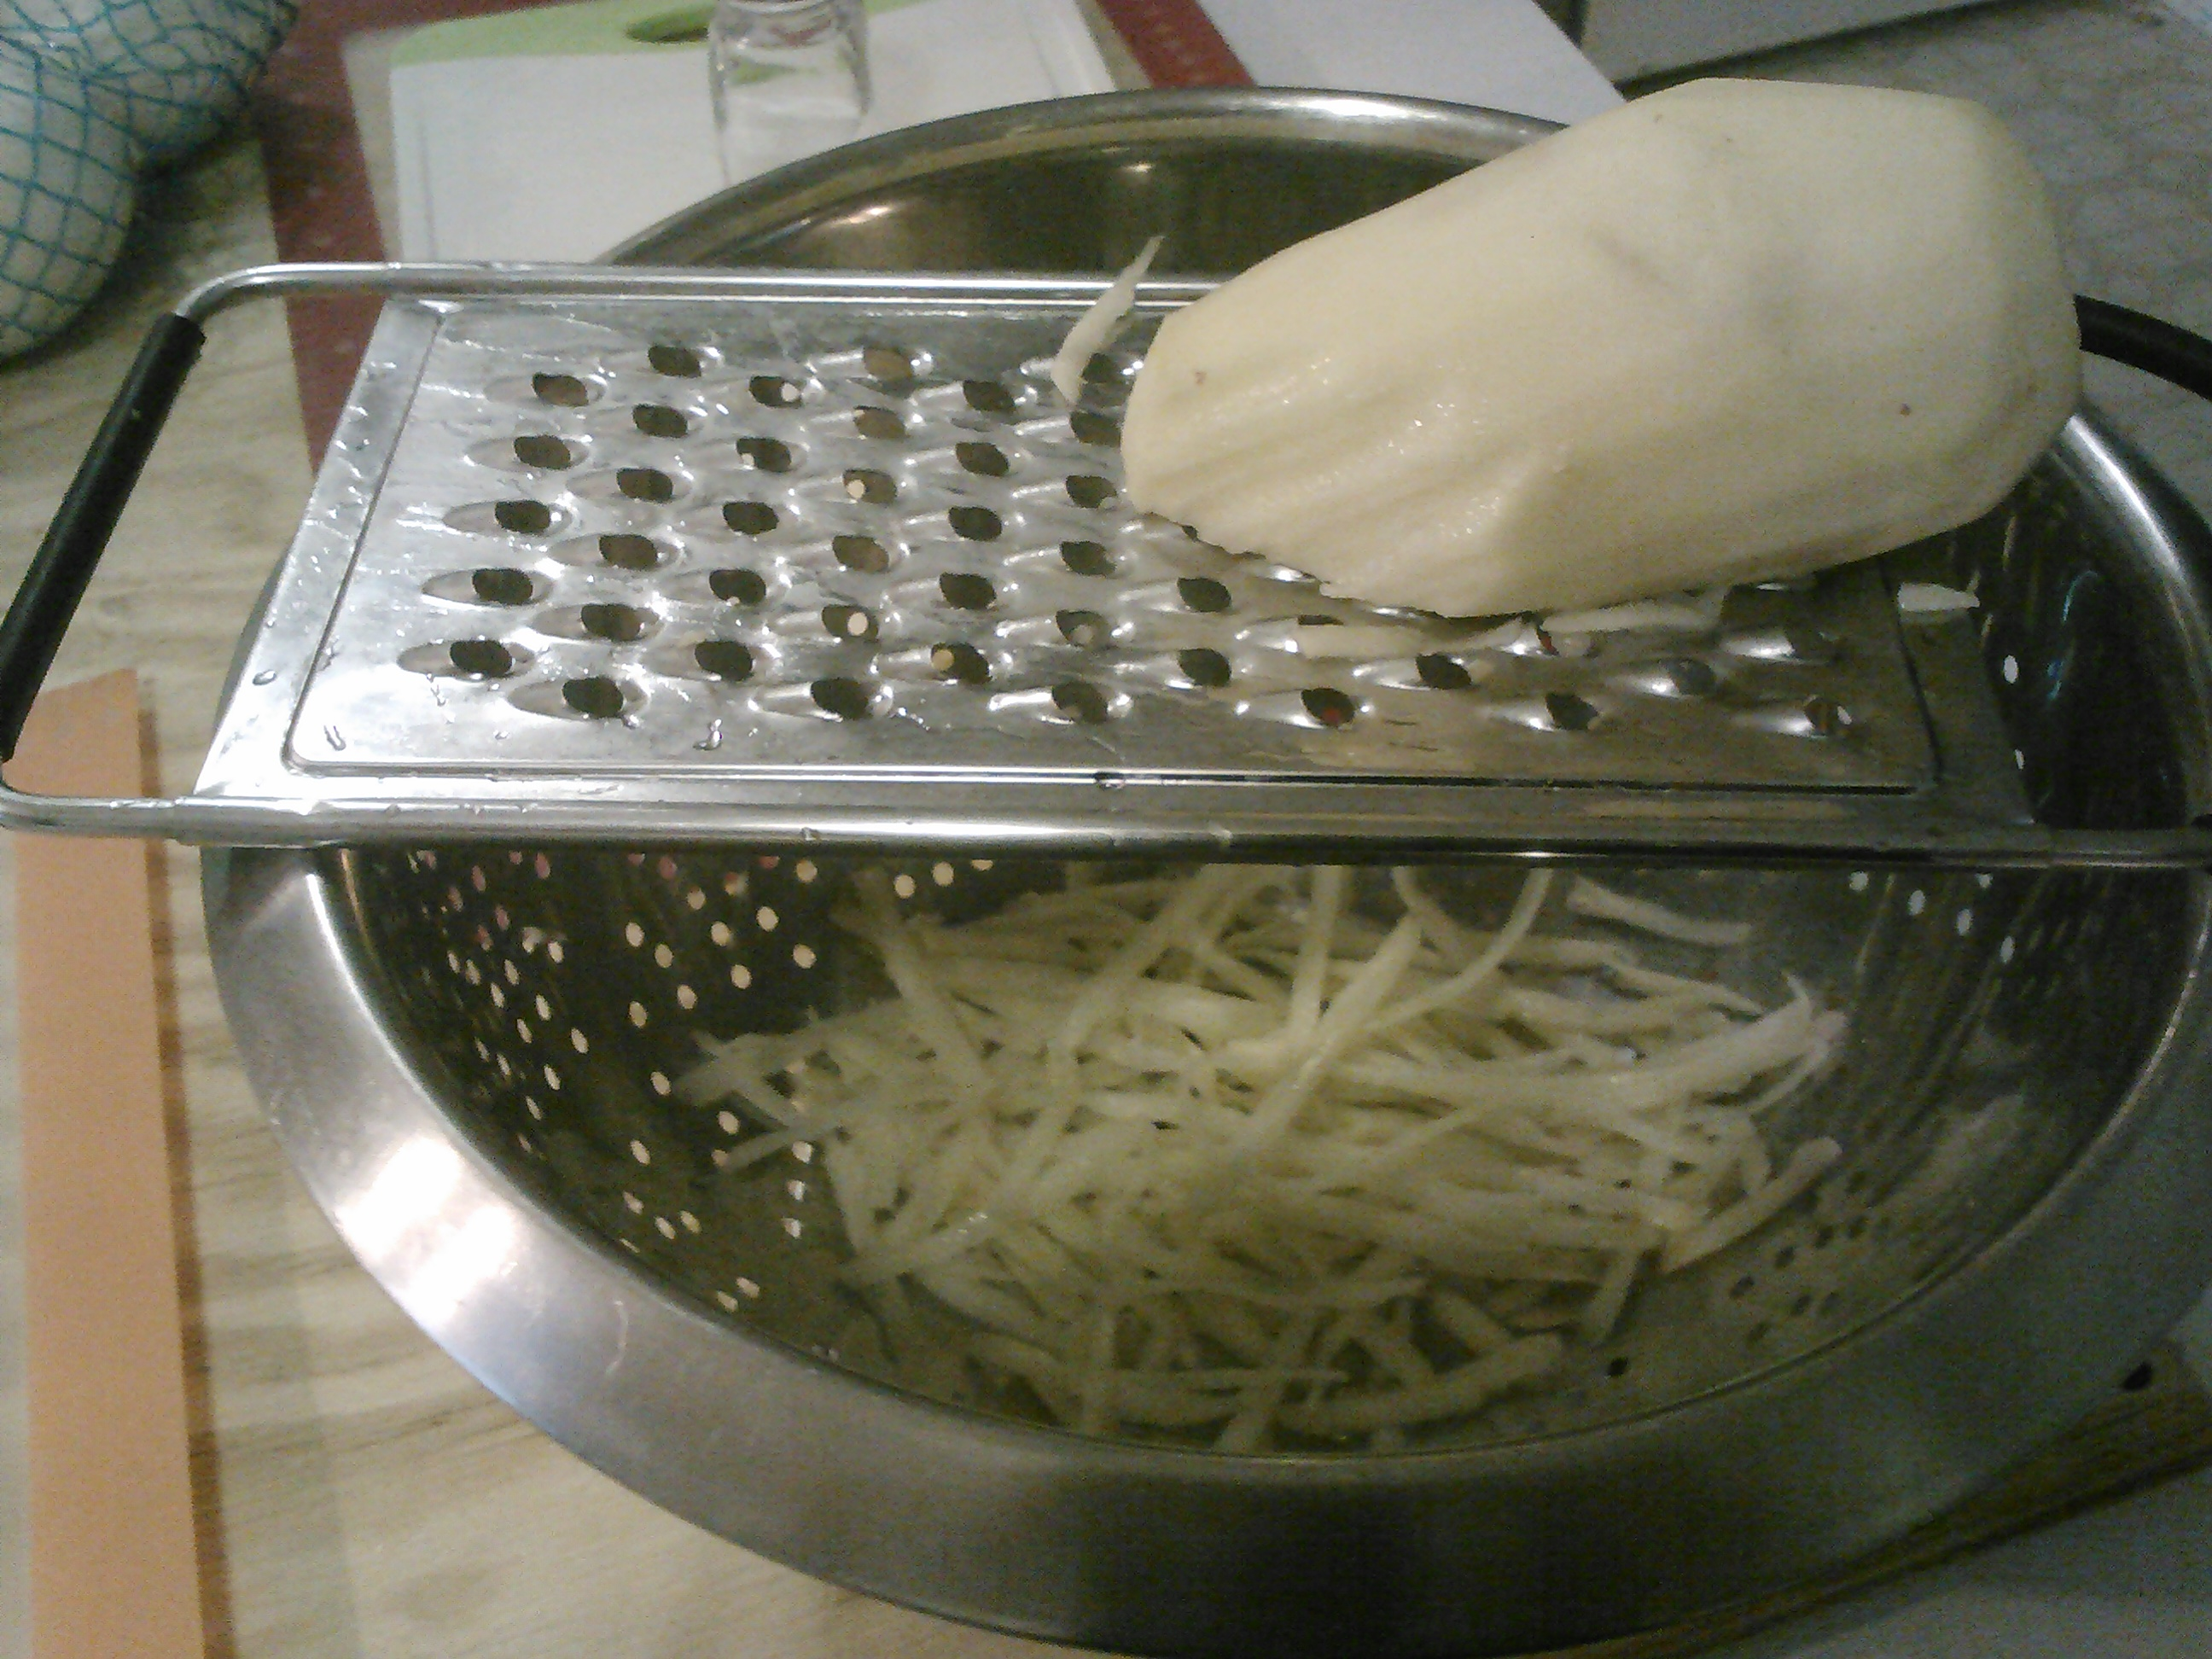 Picture of Peel, Grate, Mix